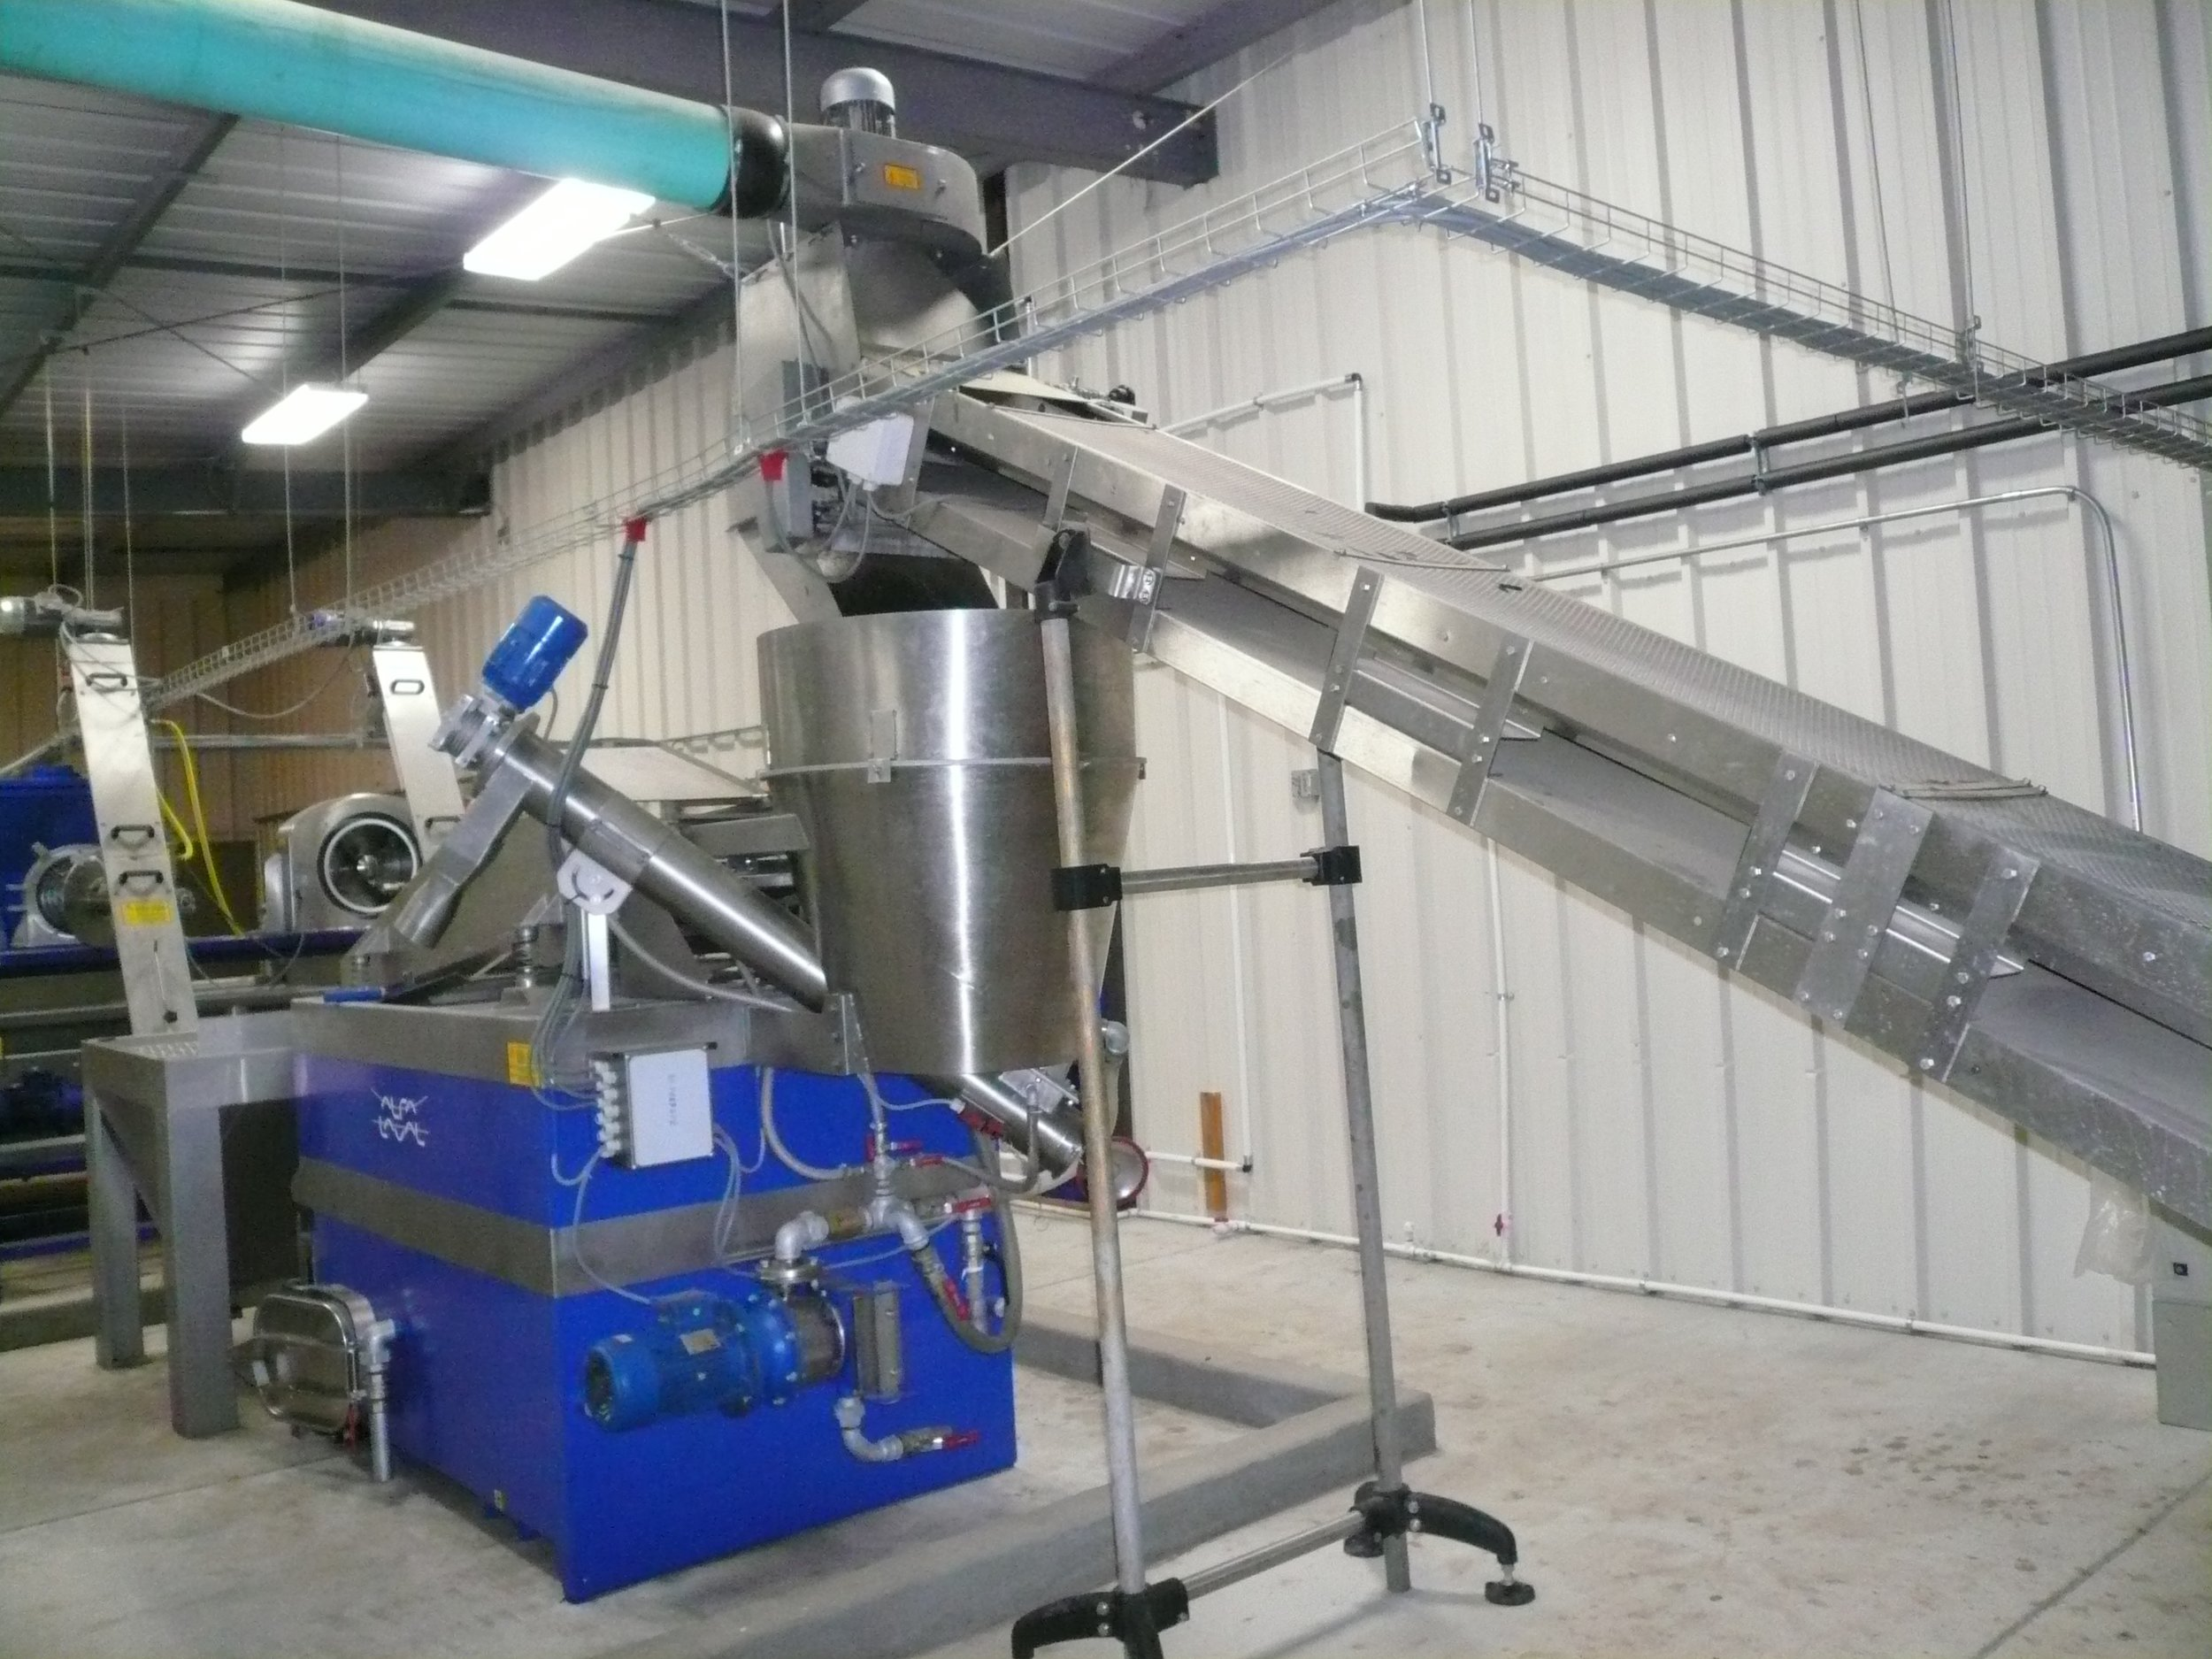 State of the art Italian made Alfa Laval three phase olive mill.